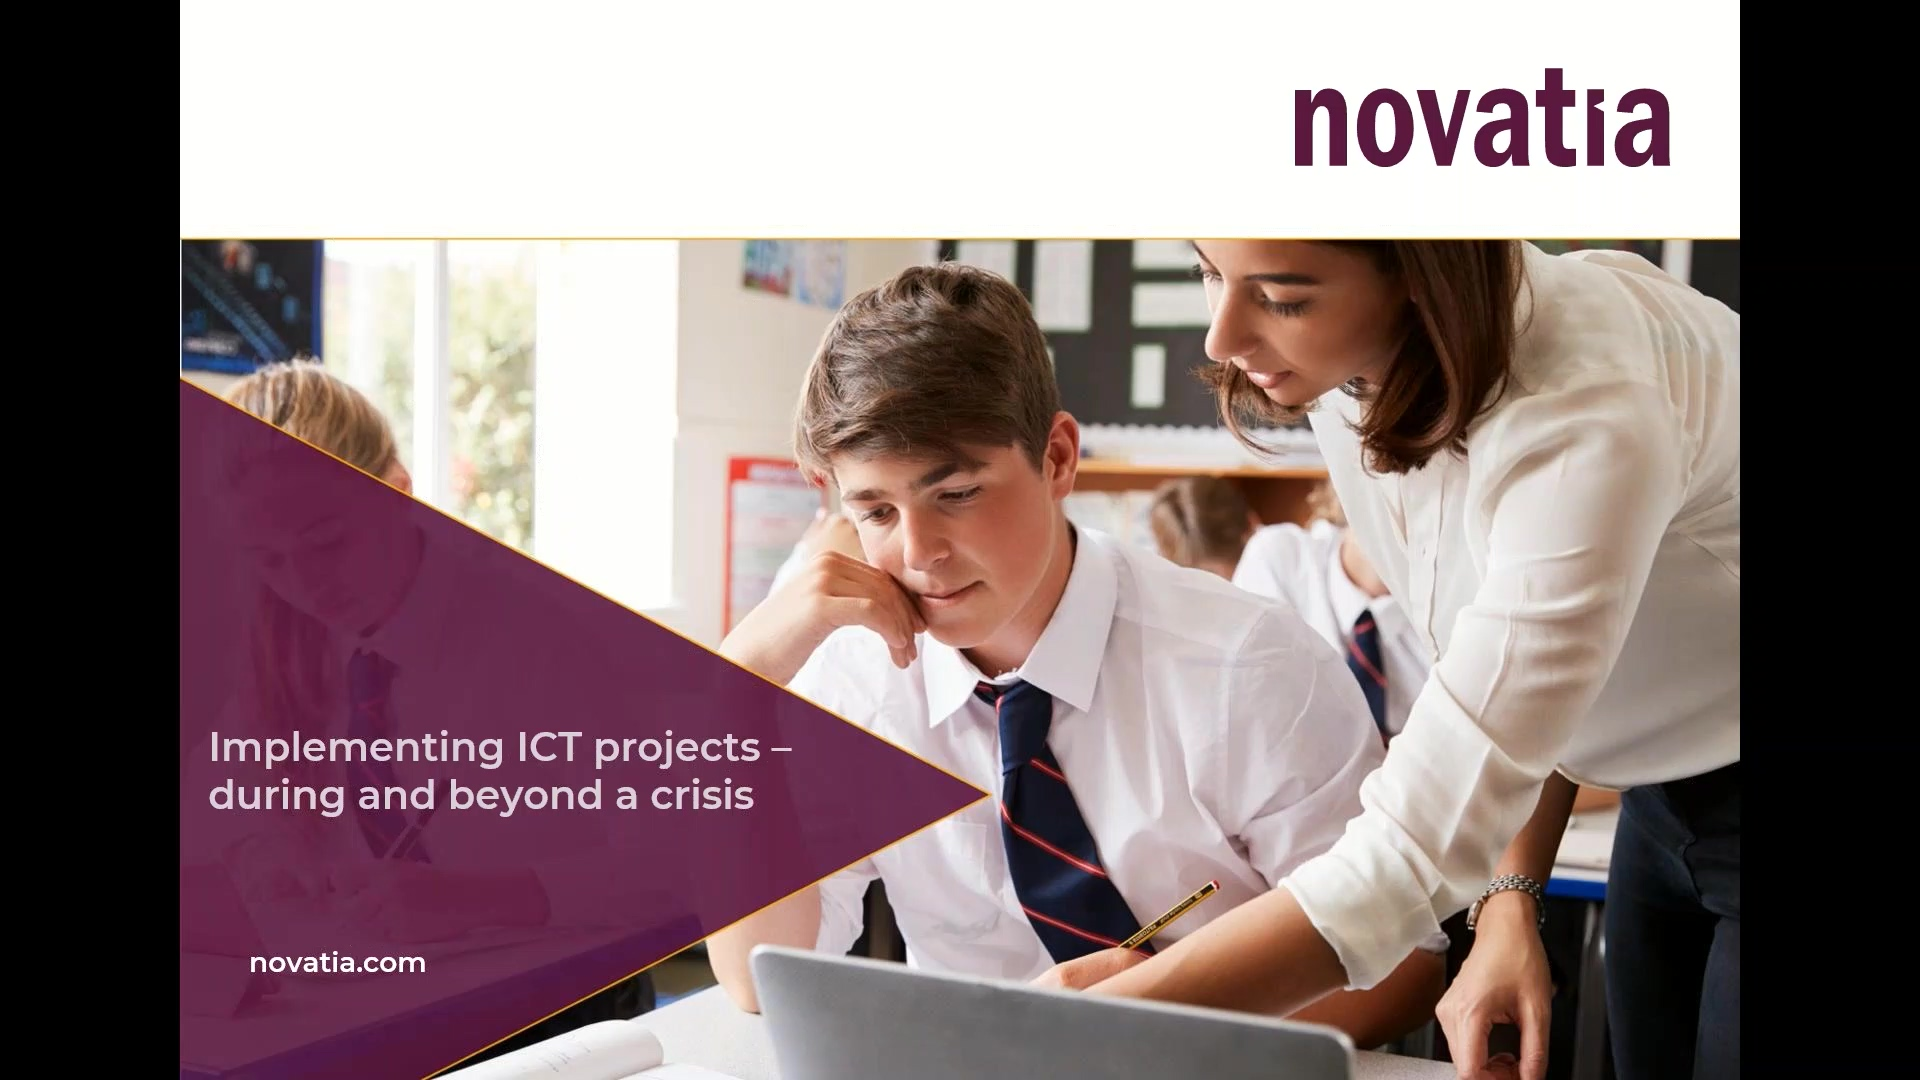 ICT Projects - Implementing an ICT project during and beyond a crisis